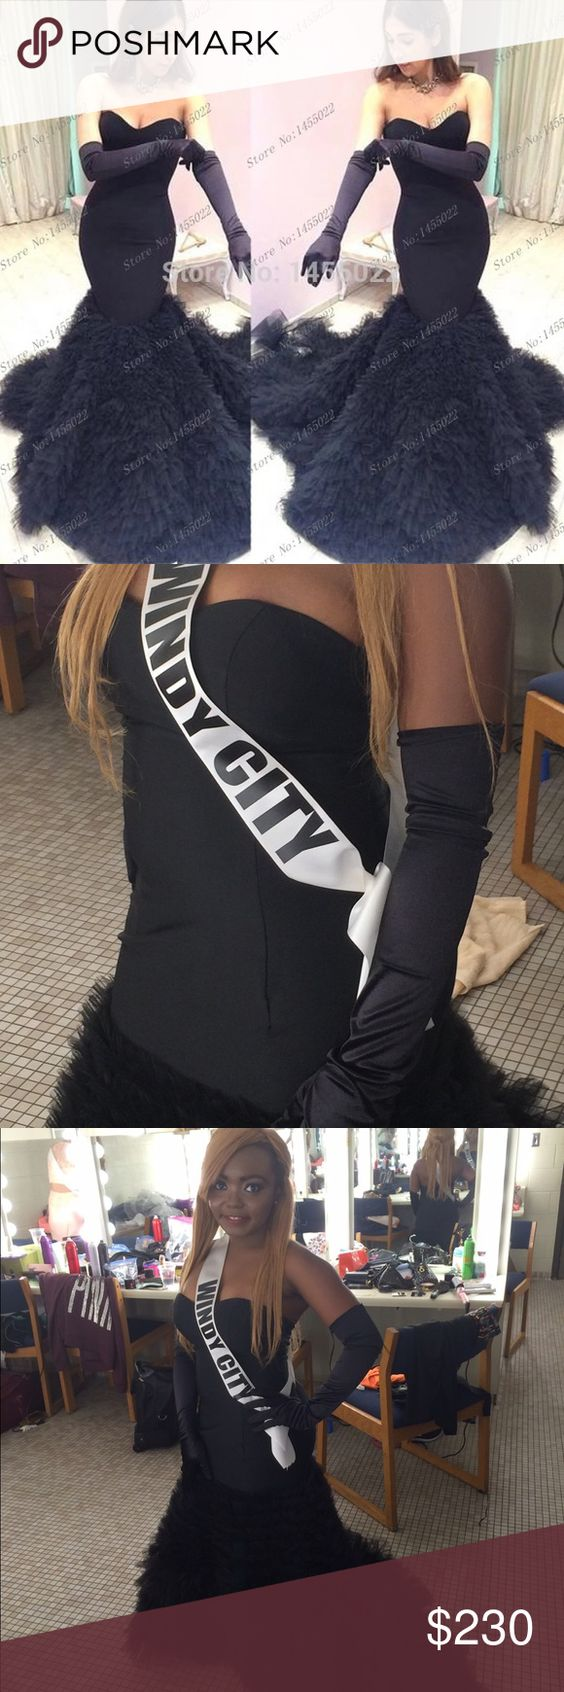 Black gloves for gown - Pageant Gown Black Mermaid Style Ruffled Tulle Pageant Gown Petfect For An Elegant Formal Occasion Evening Wear I Ll Even Throw In The Pair Of Black